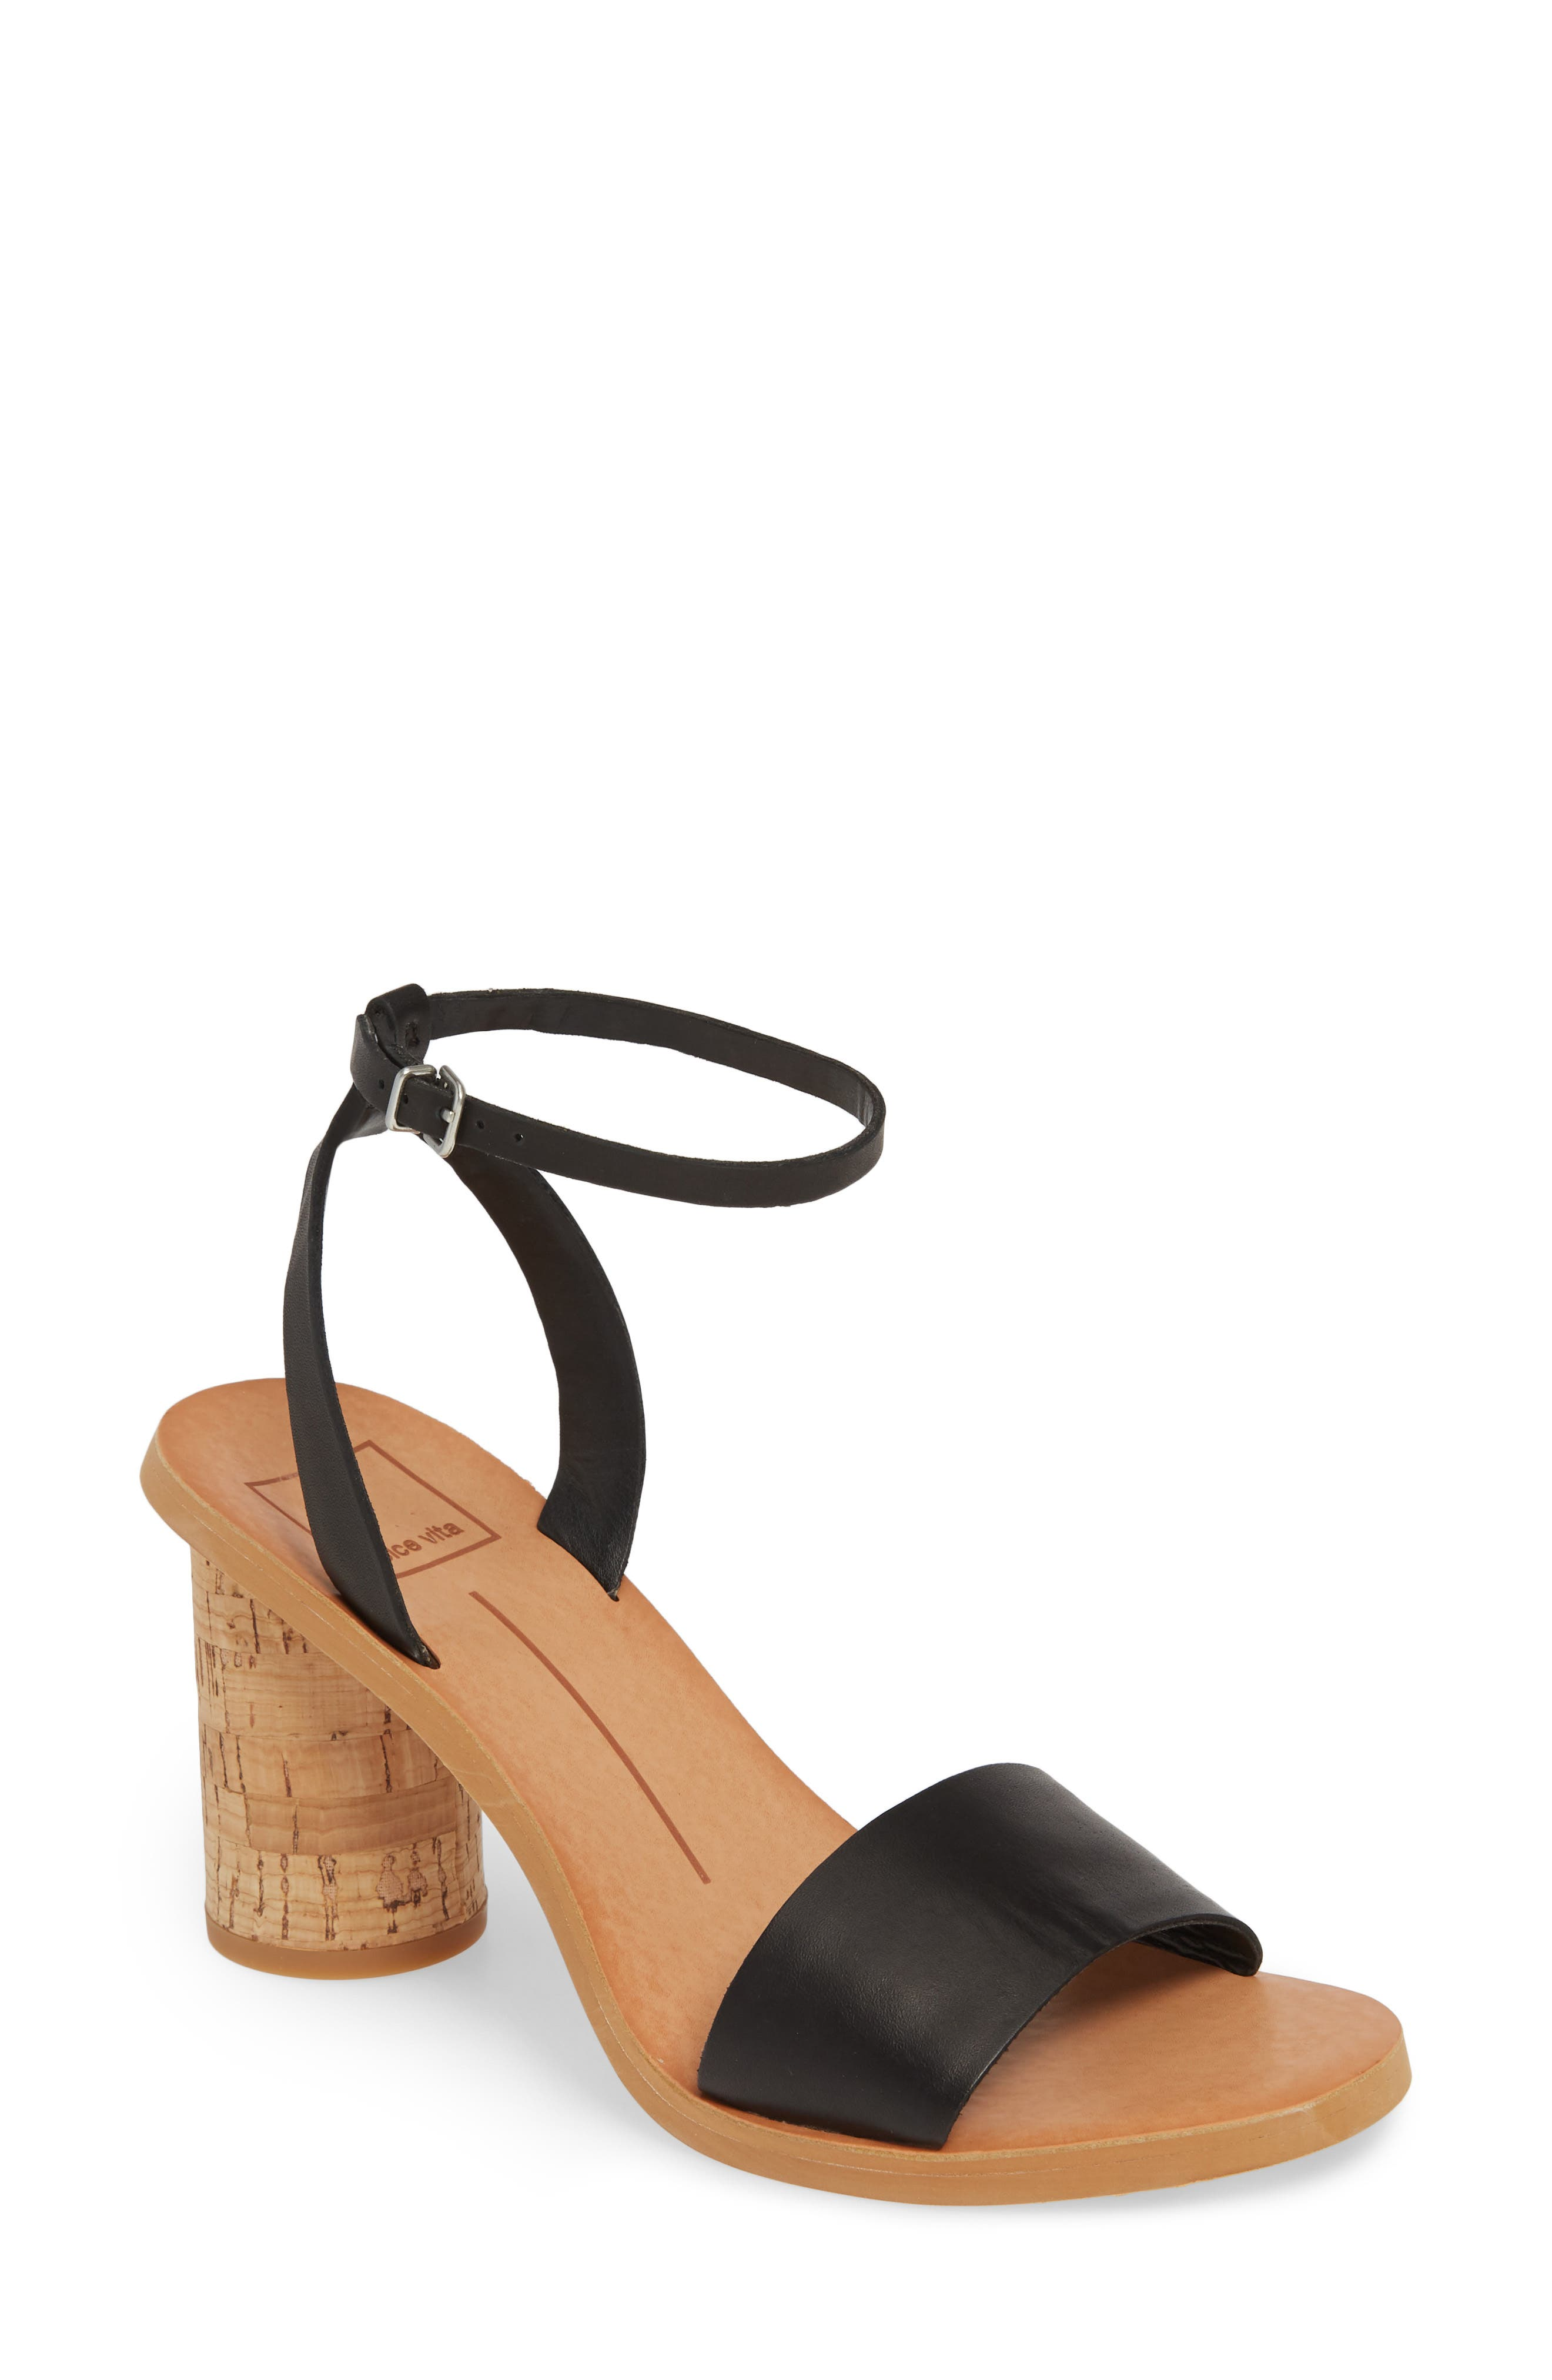 DOLCE VITA Jali Column Heel Sandal, Main, color, BLACK LEATHER